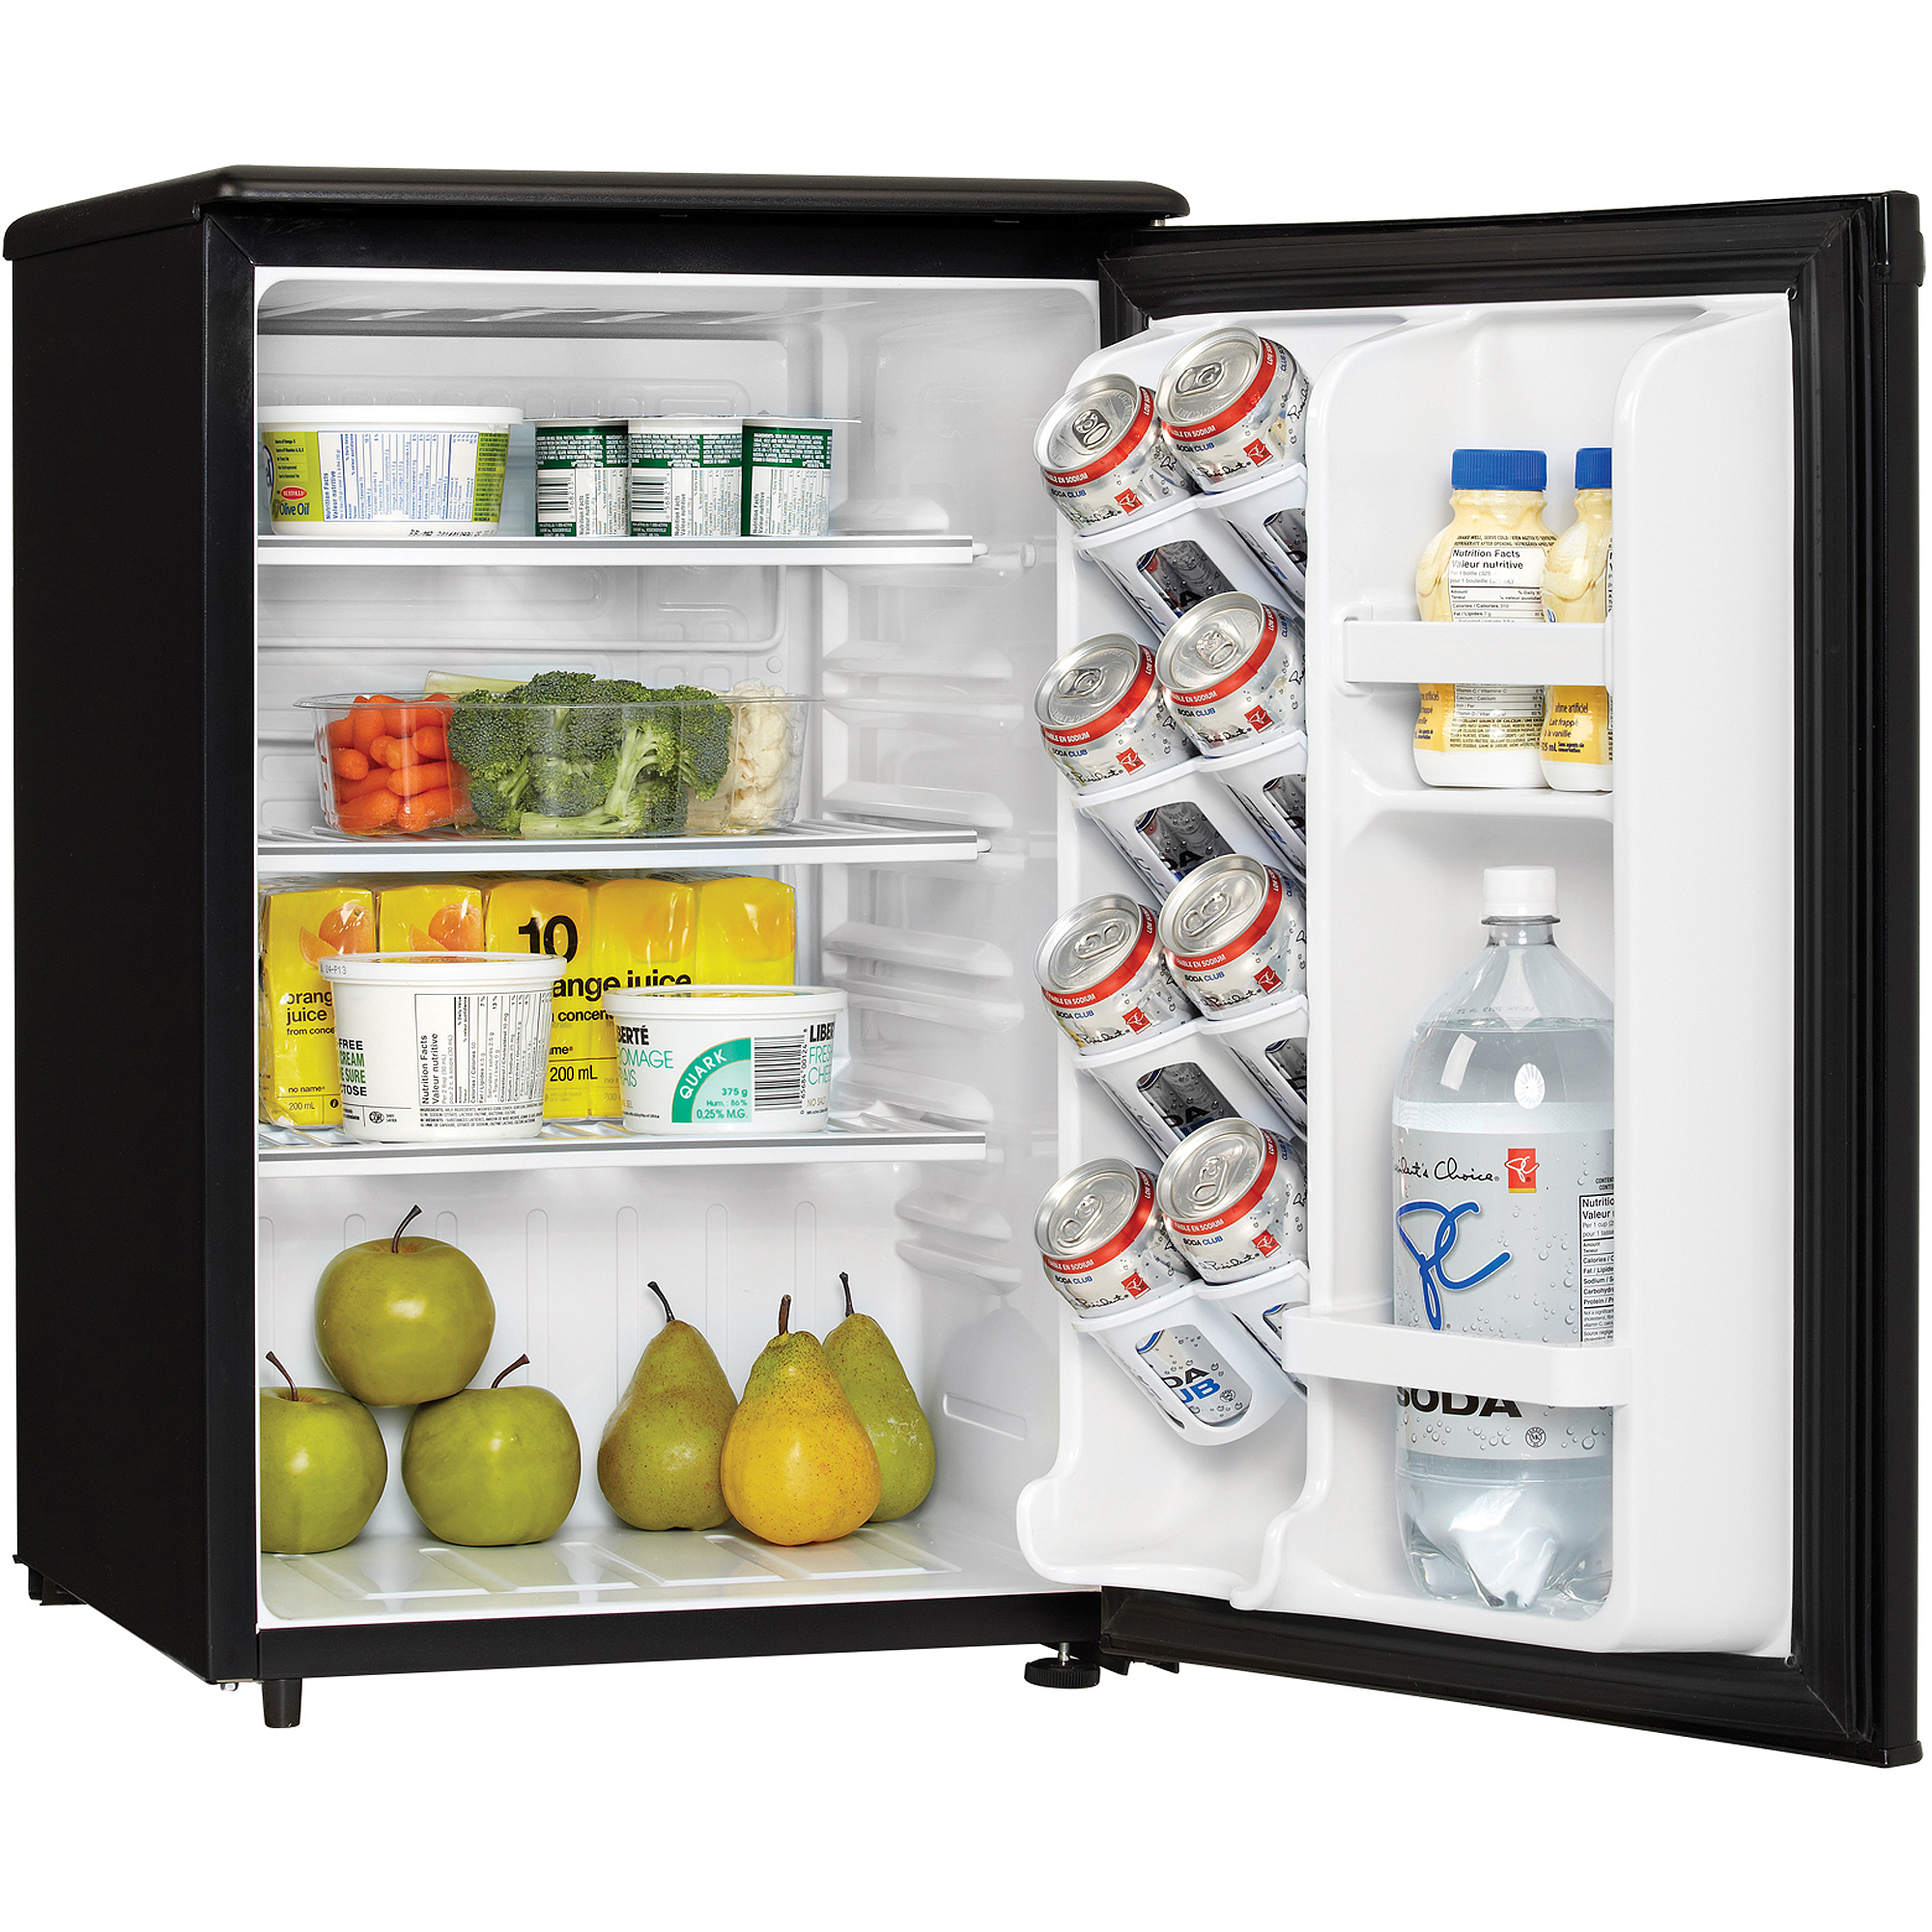 Danby Designer 2.6 cu ft All Refrigerator, Black